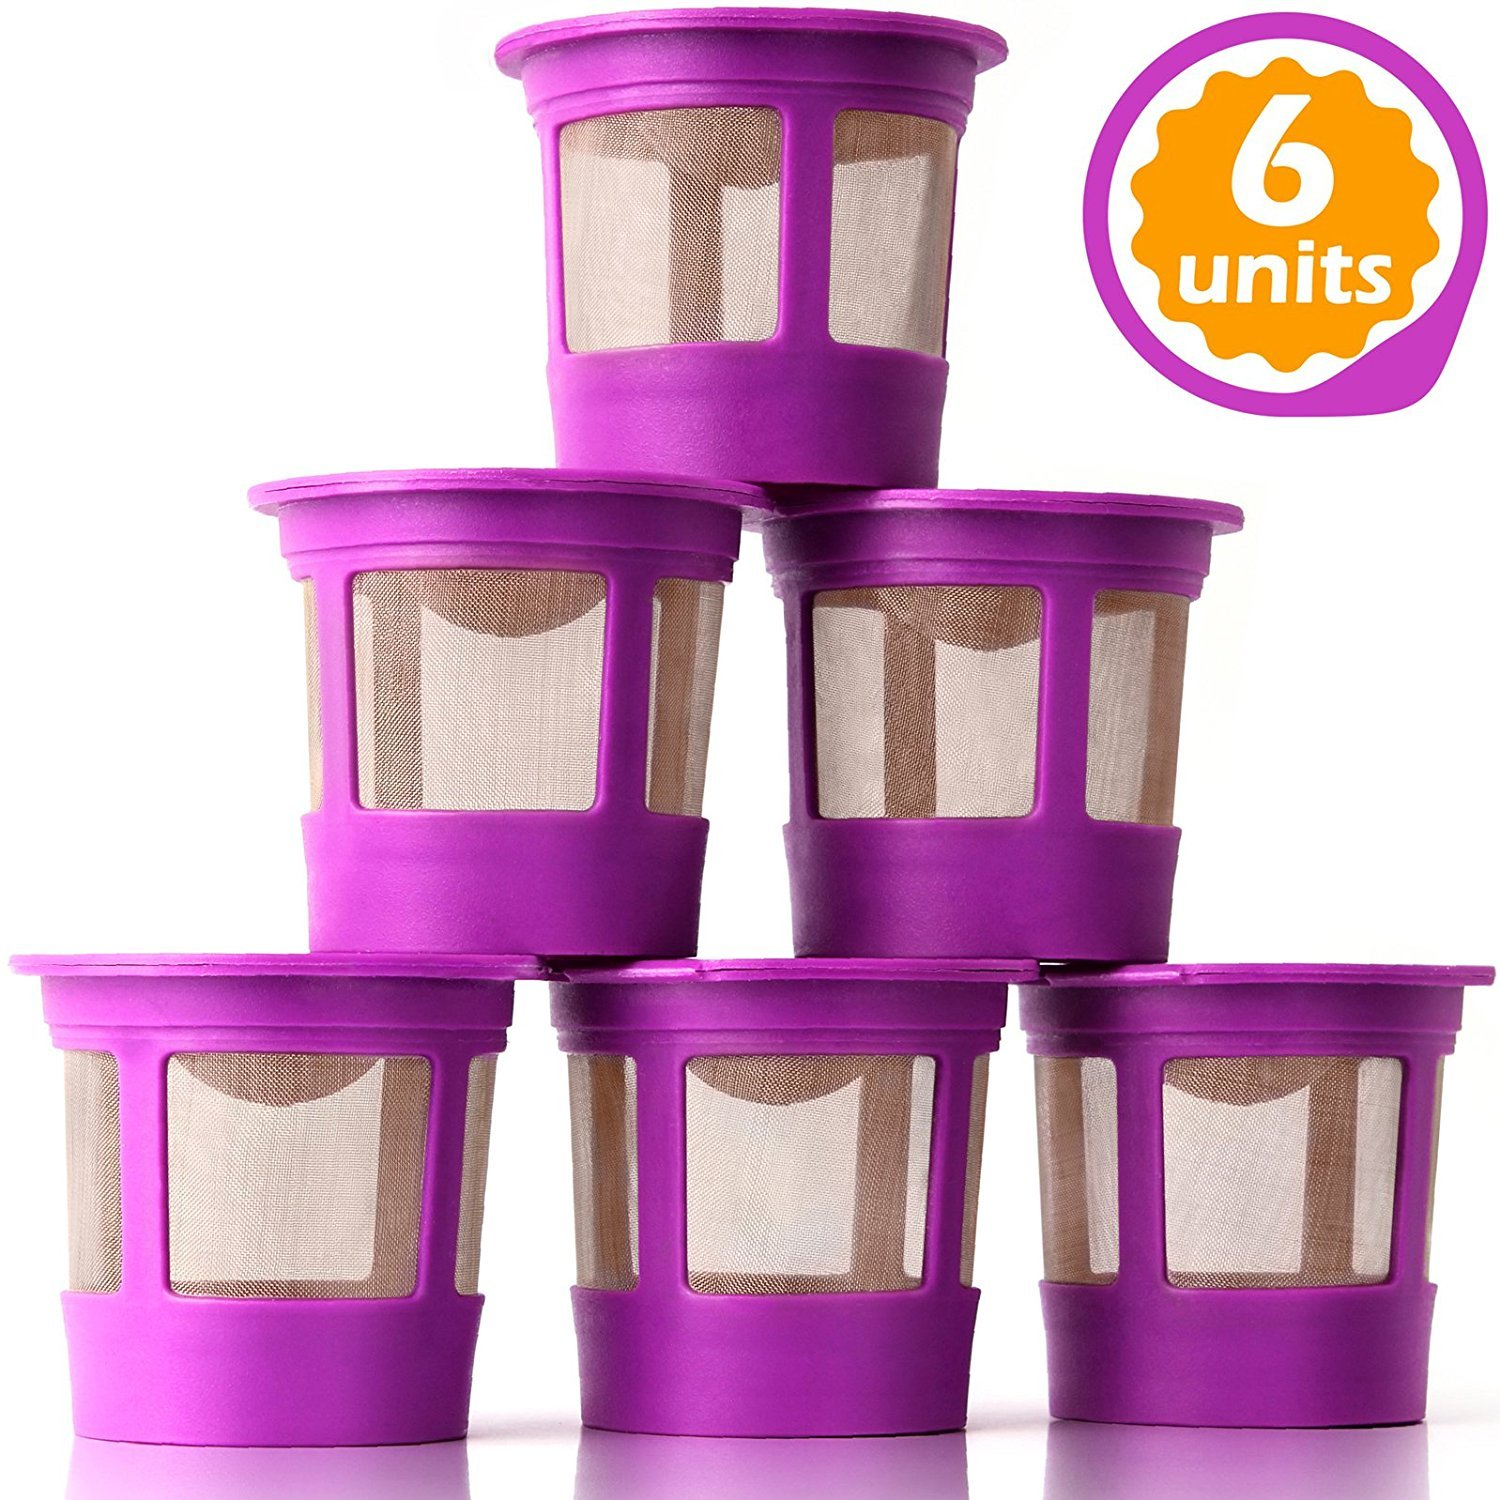 GoodCups 6 Reusable K Cups for Keurig K-Classic, K-Elite, K-Select, K-Cafe, K-Compact, K200, K300, K400, K500, Refillable Kcups Coffee Filters for 2.0 and 1.0 Brewers by GoodCups®